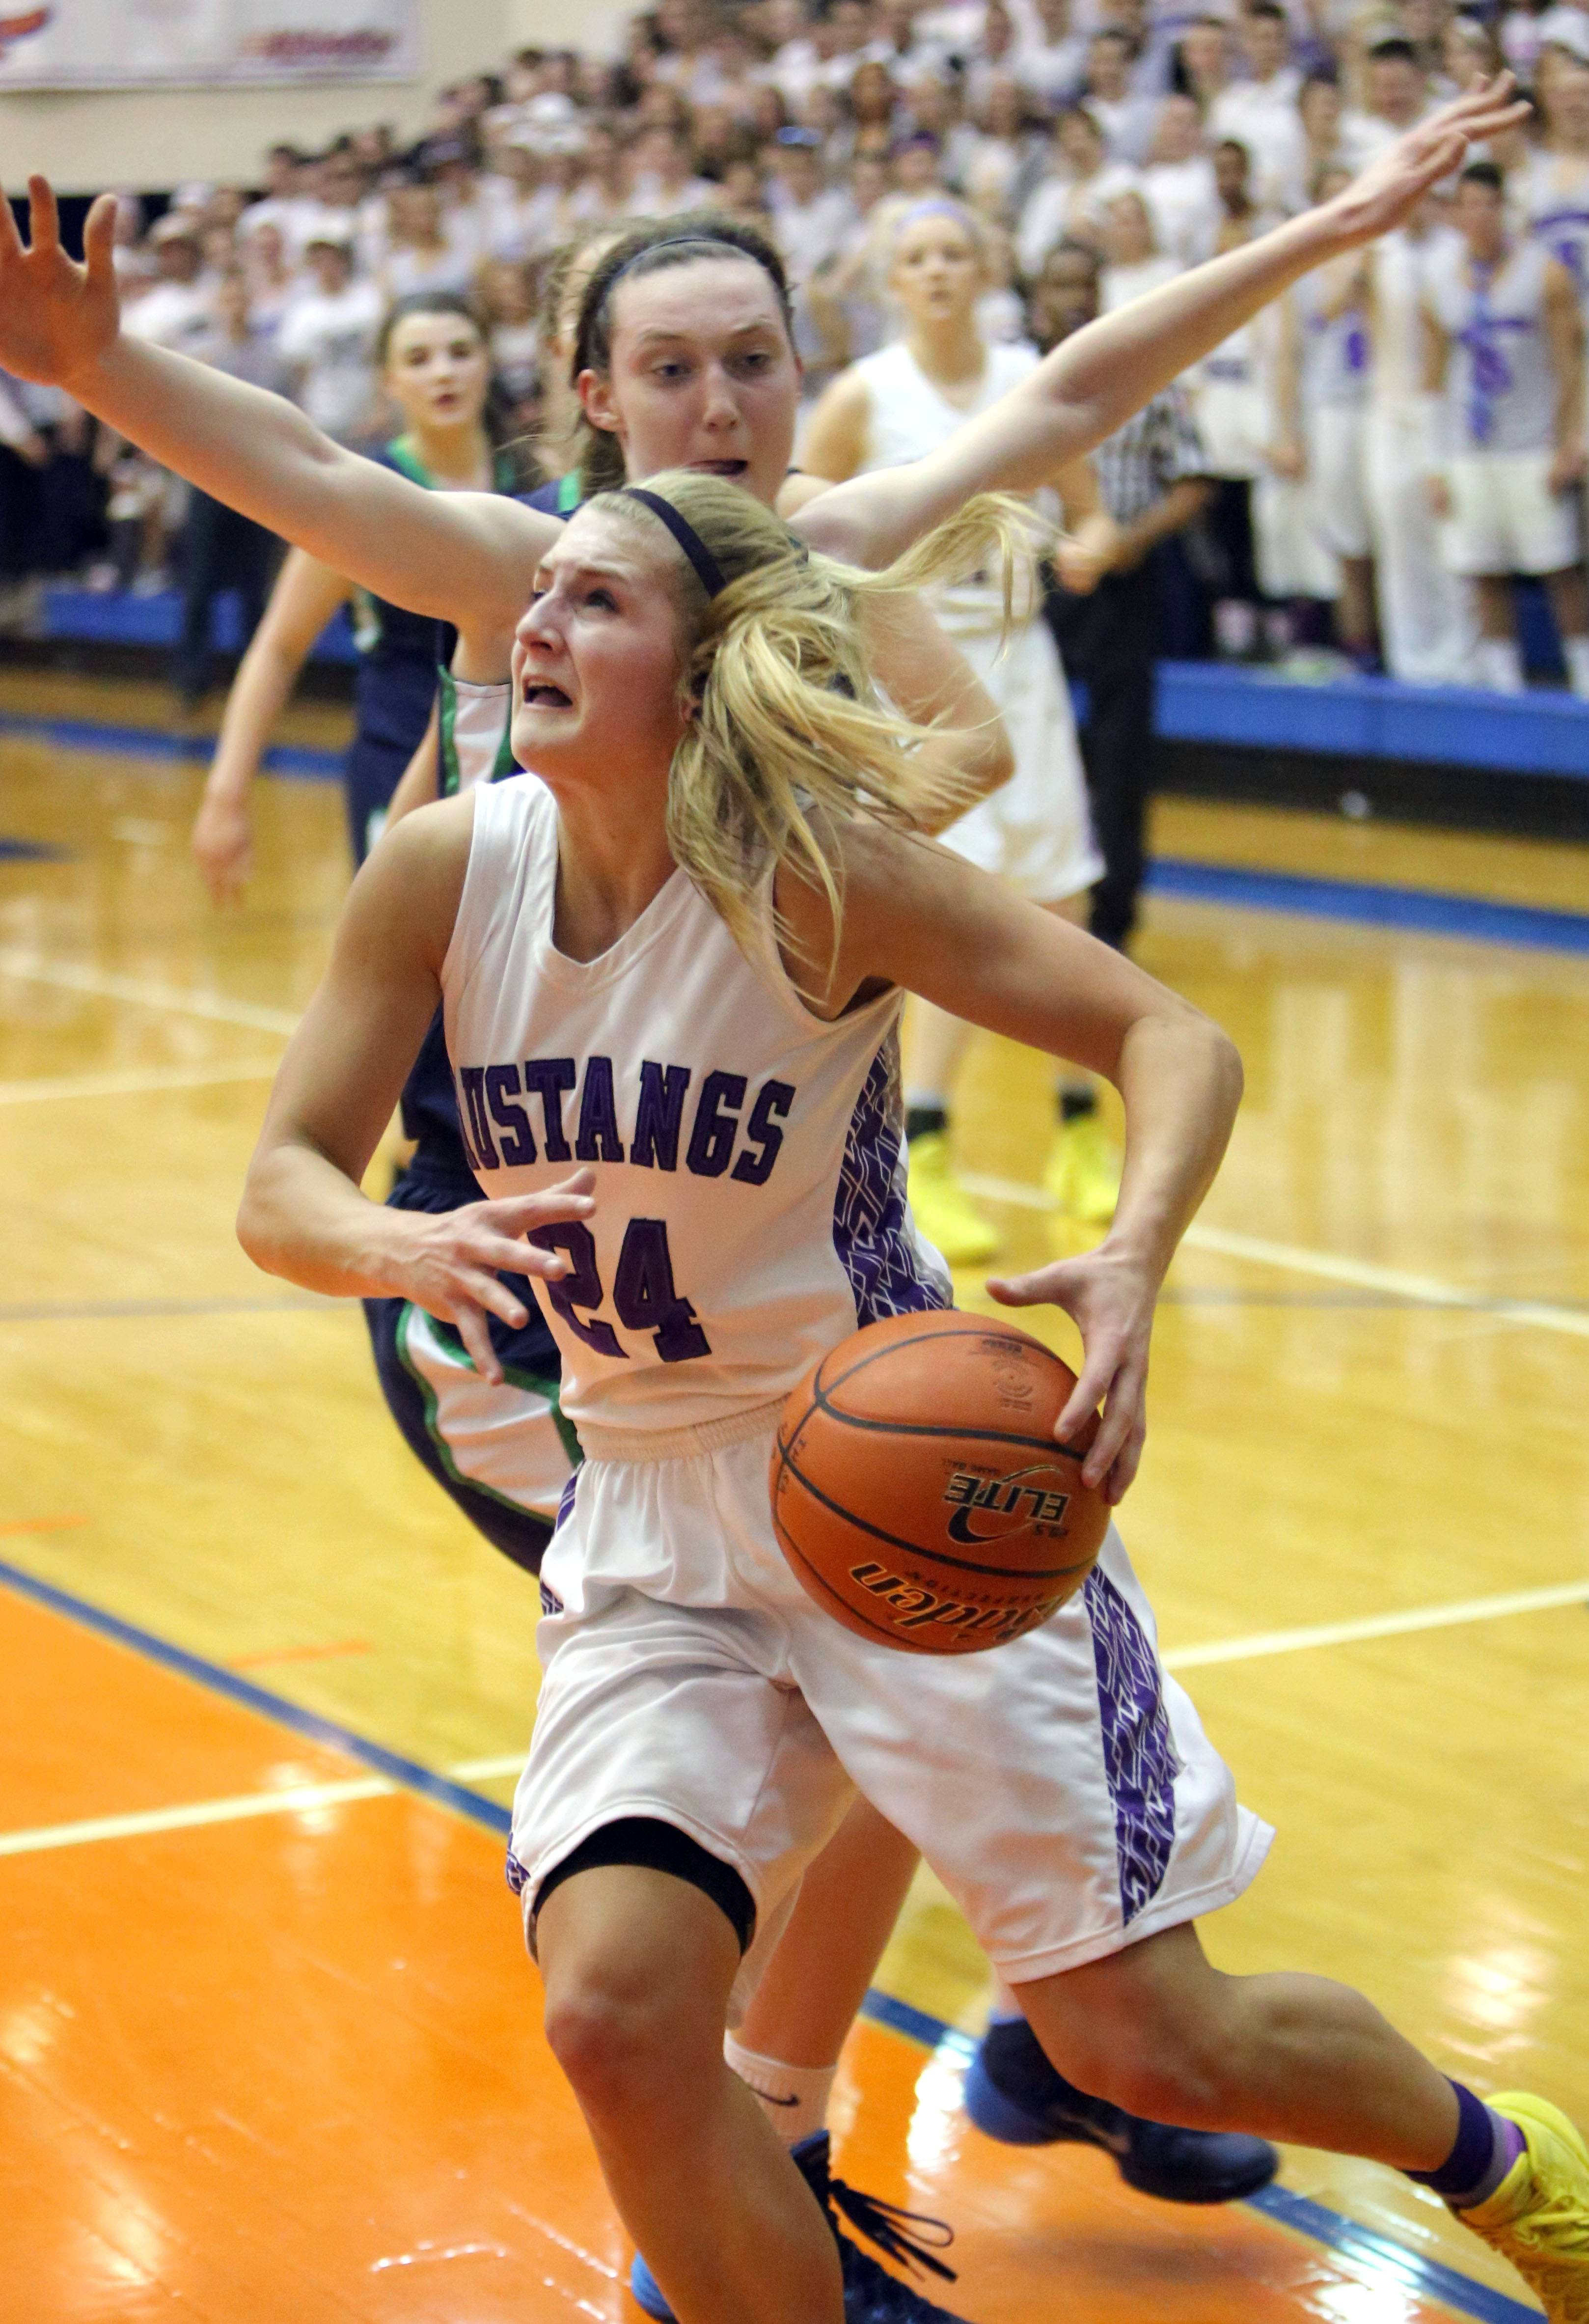 Rolling Meadows' Alexis Glasgow drives past New Trier's Jeannie Boehm during the Class 4A supersectional at Hoffman Estates on Monday.